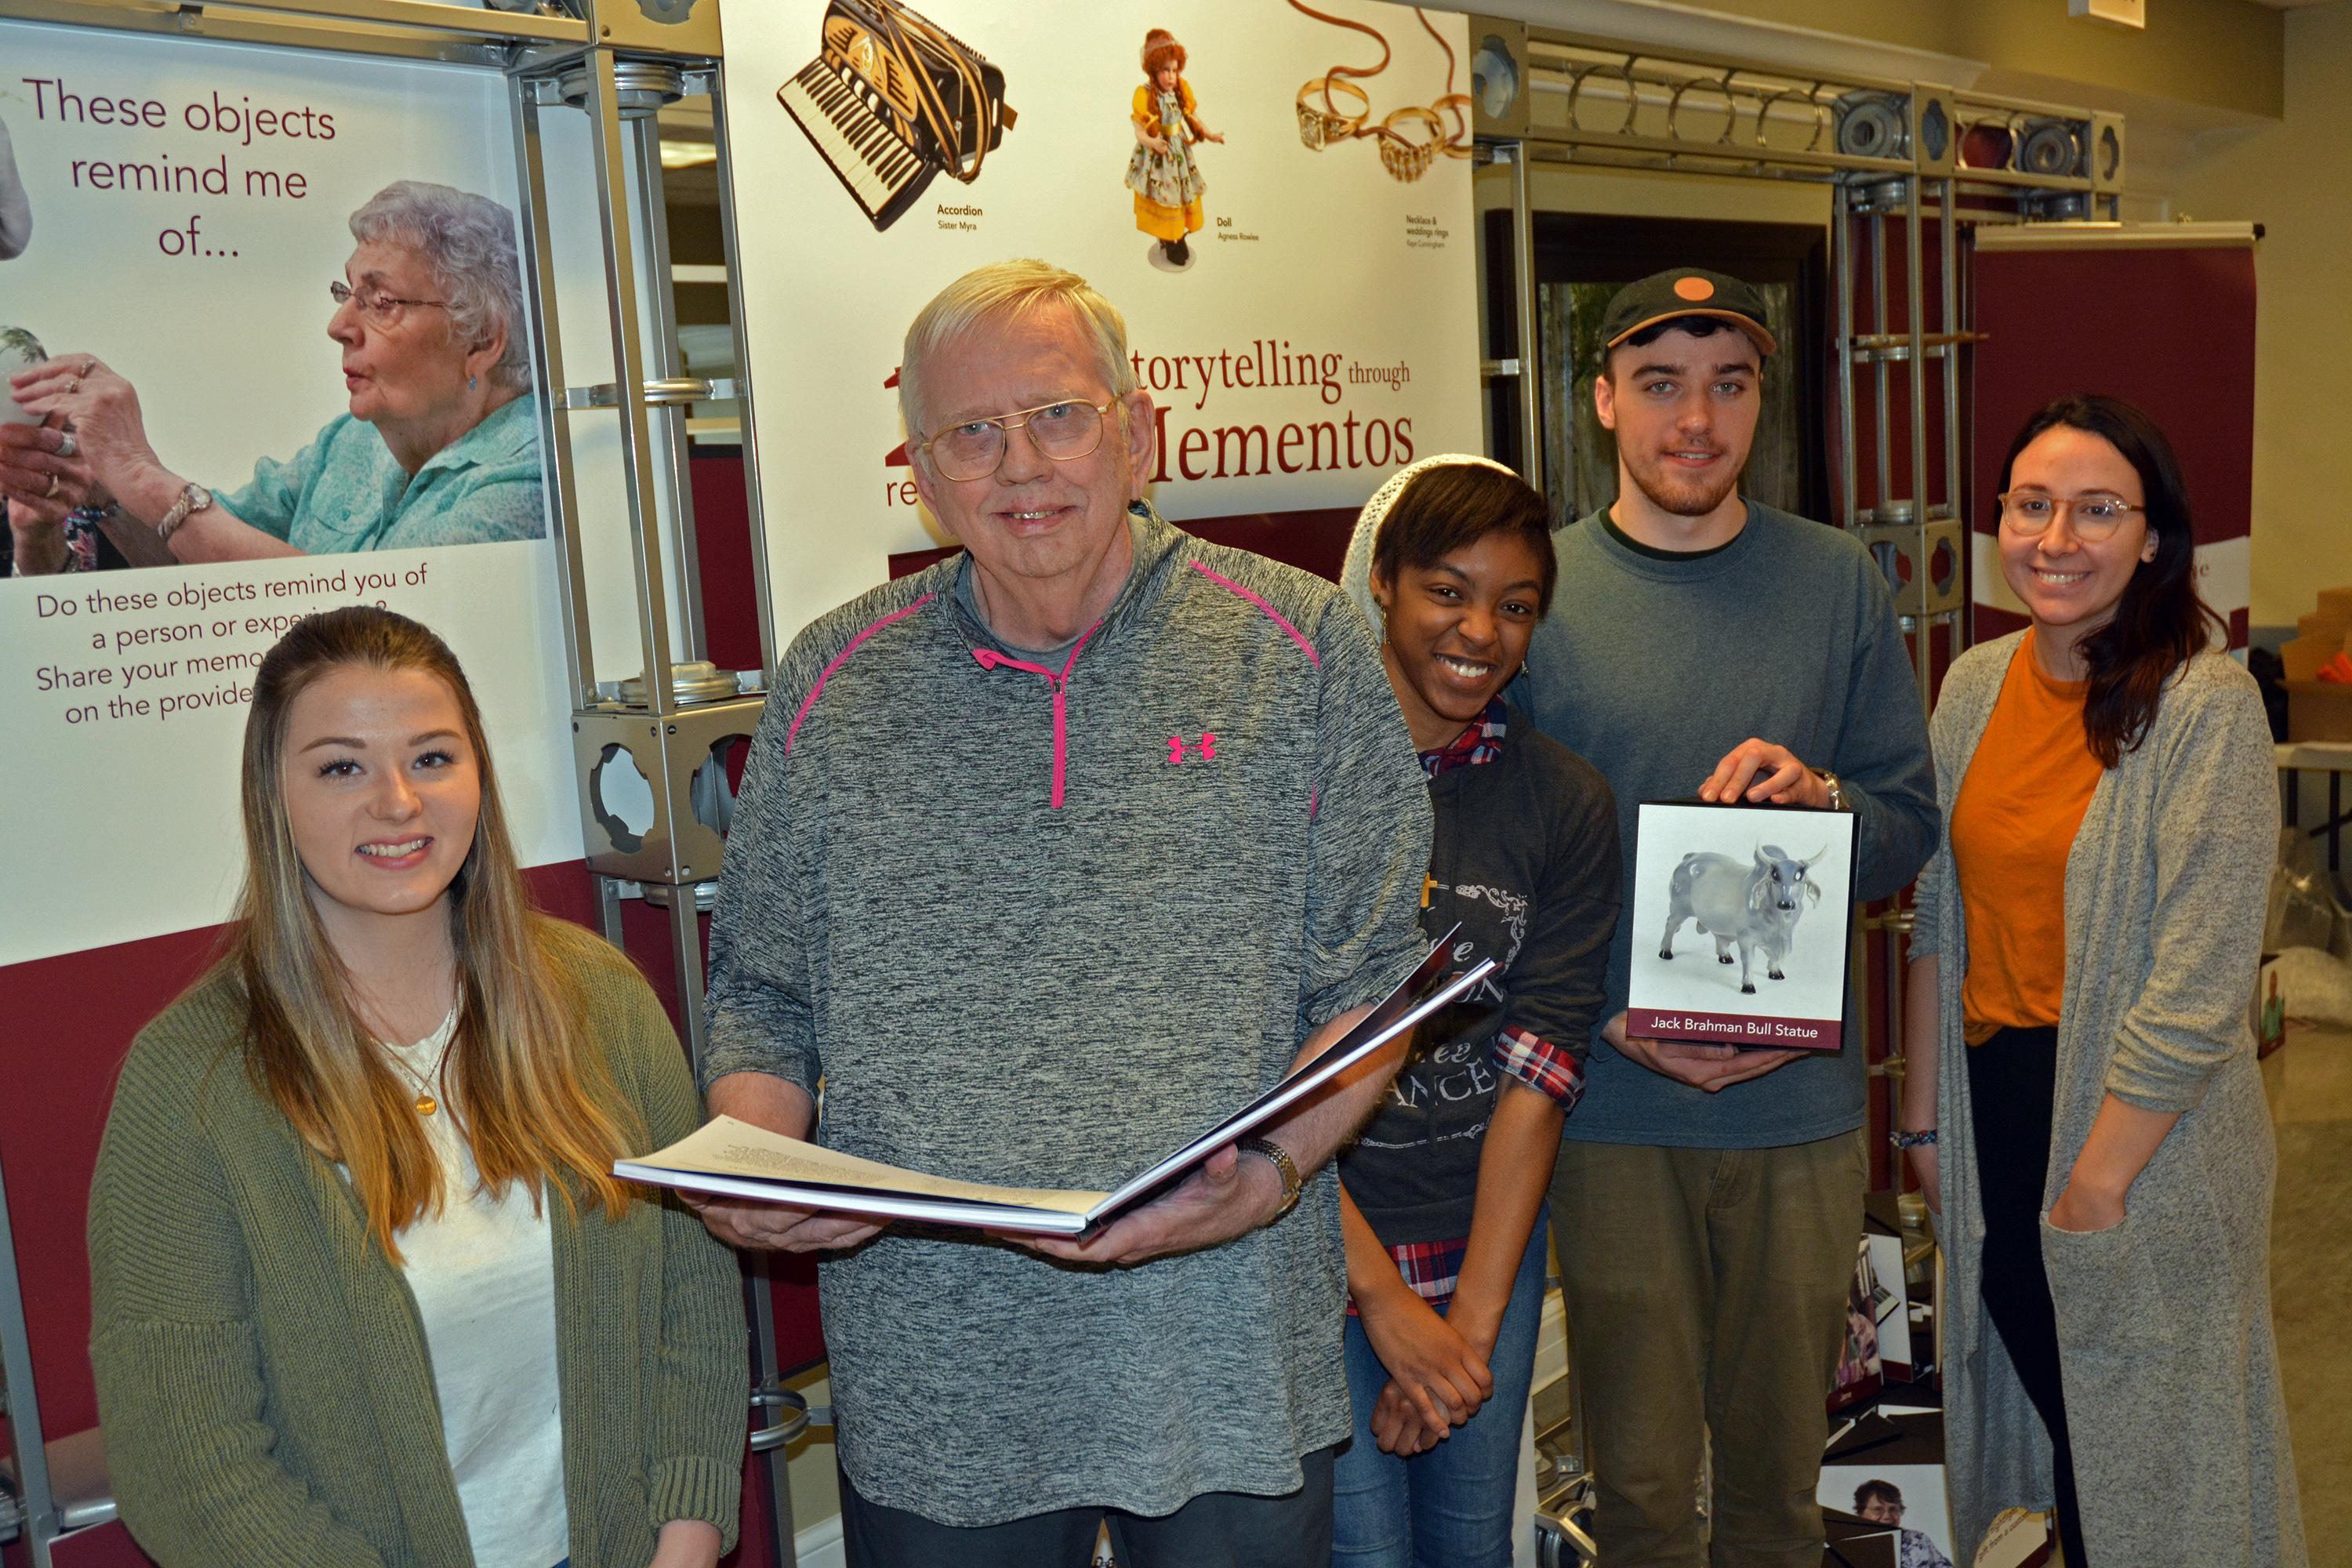 Students and a senior citizen with items from Recollections art exhibition